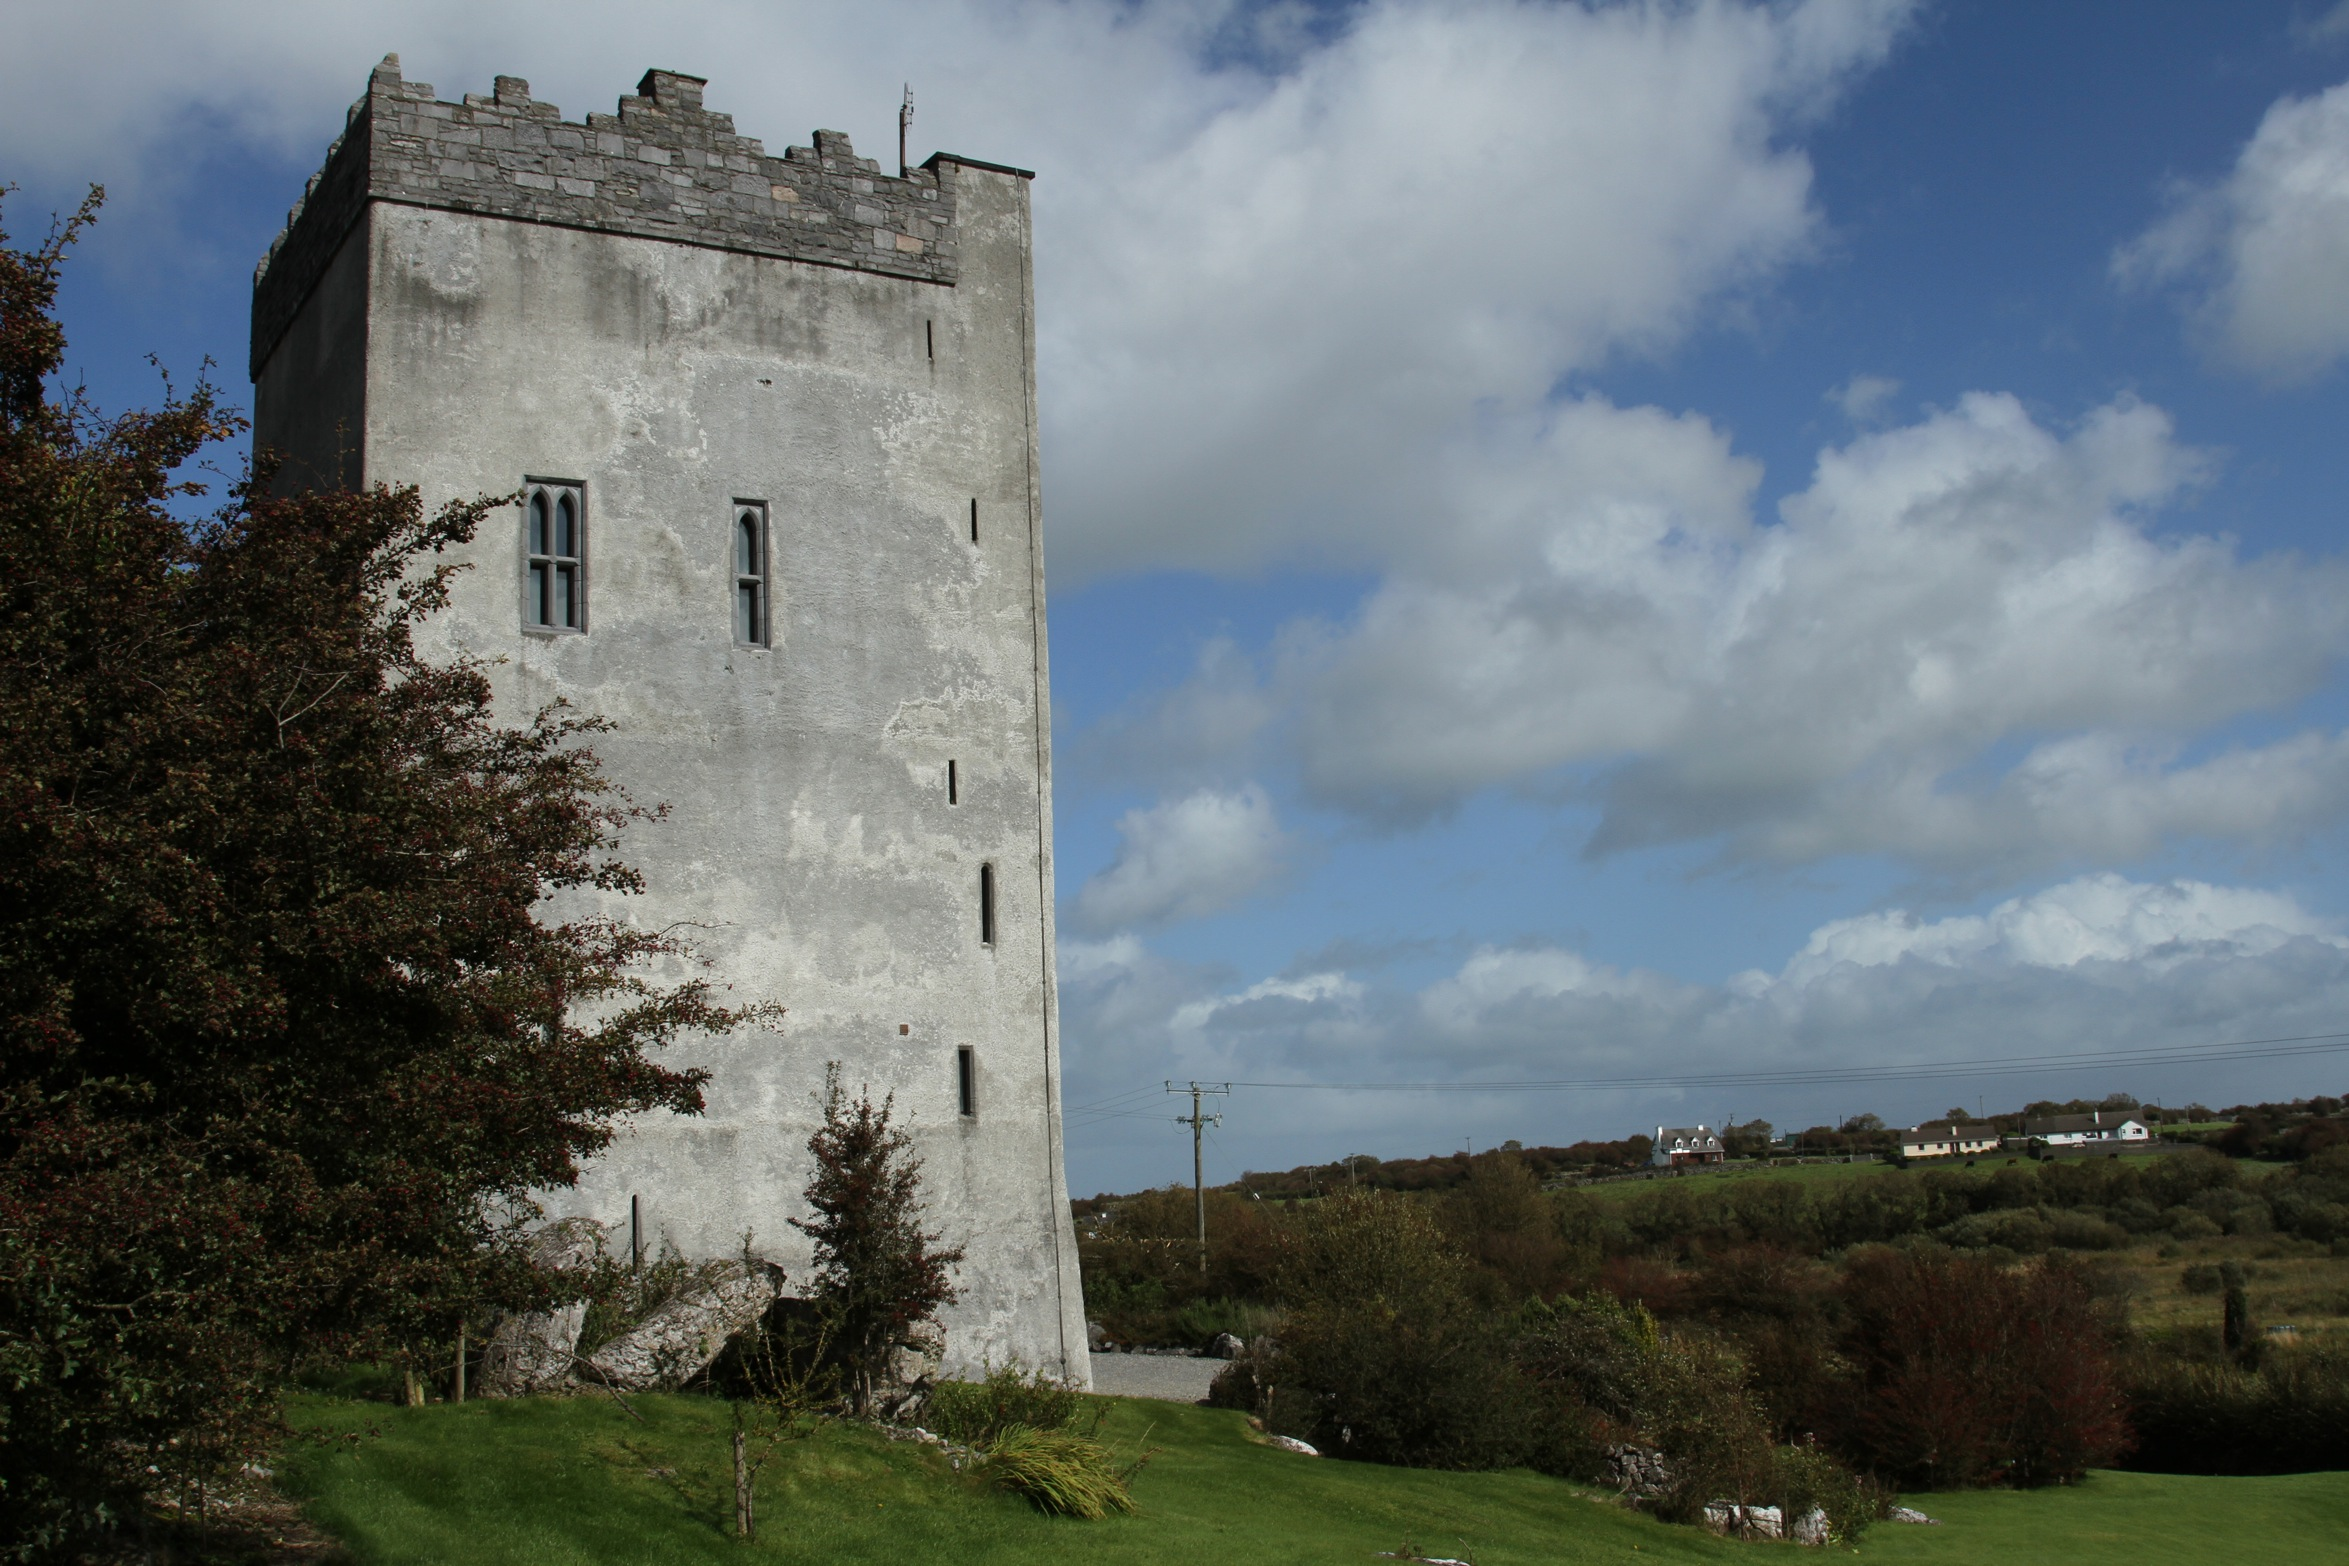 Castles for sale: BALLINDOOLEY castle in ireland